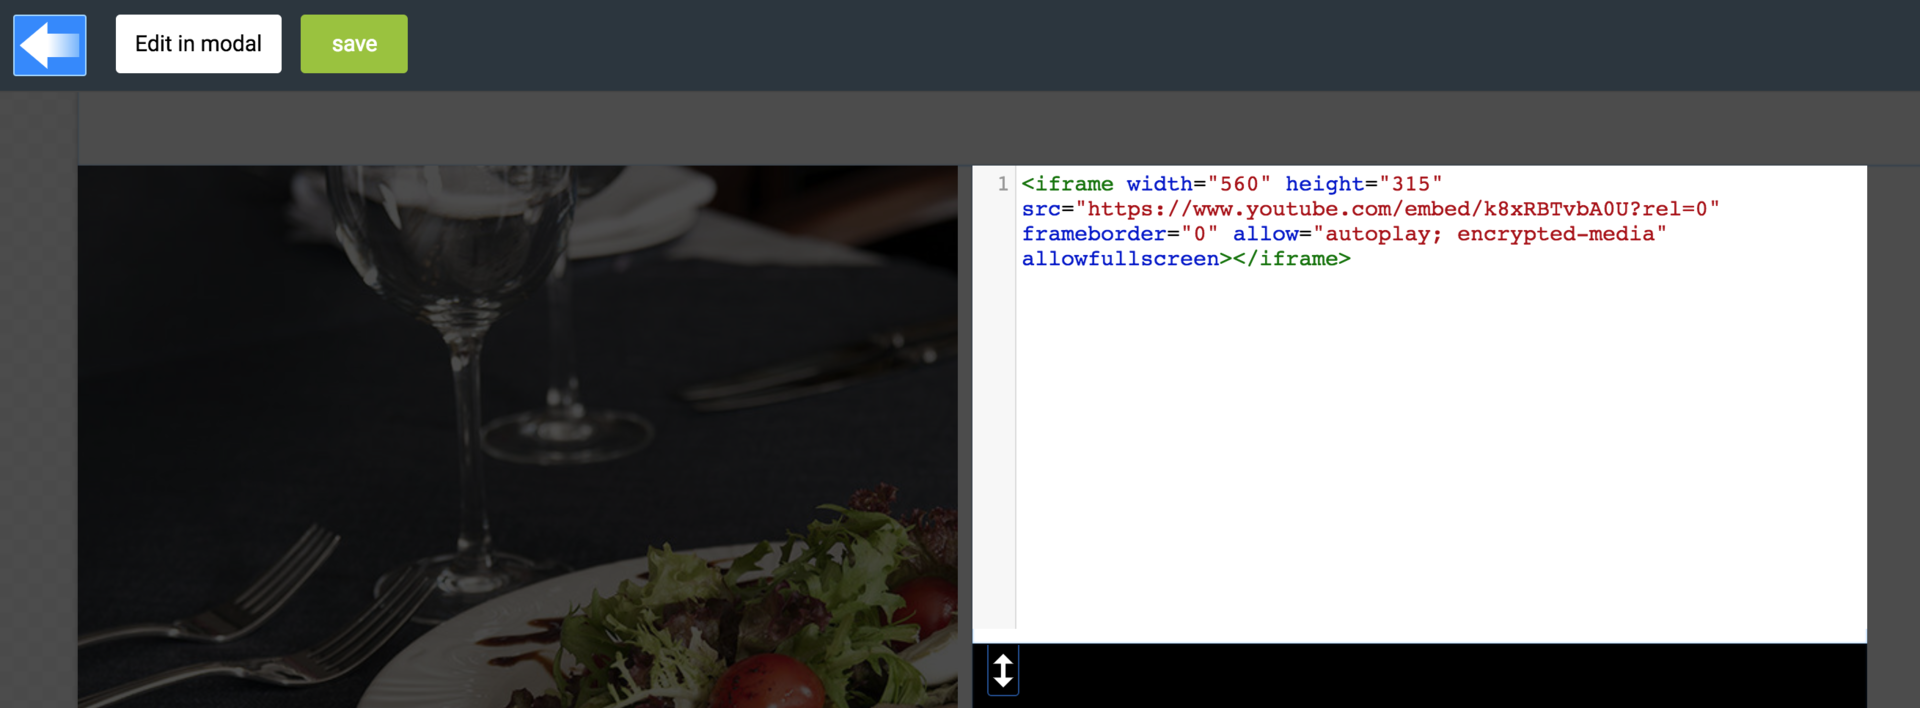 Embedding video using HTML code plugin - LiquidBlox editor